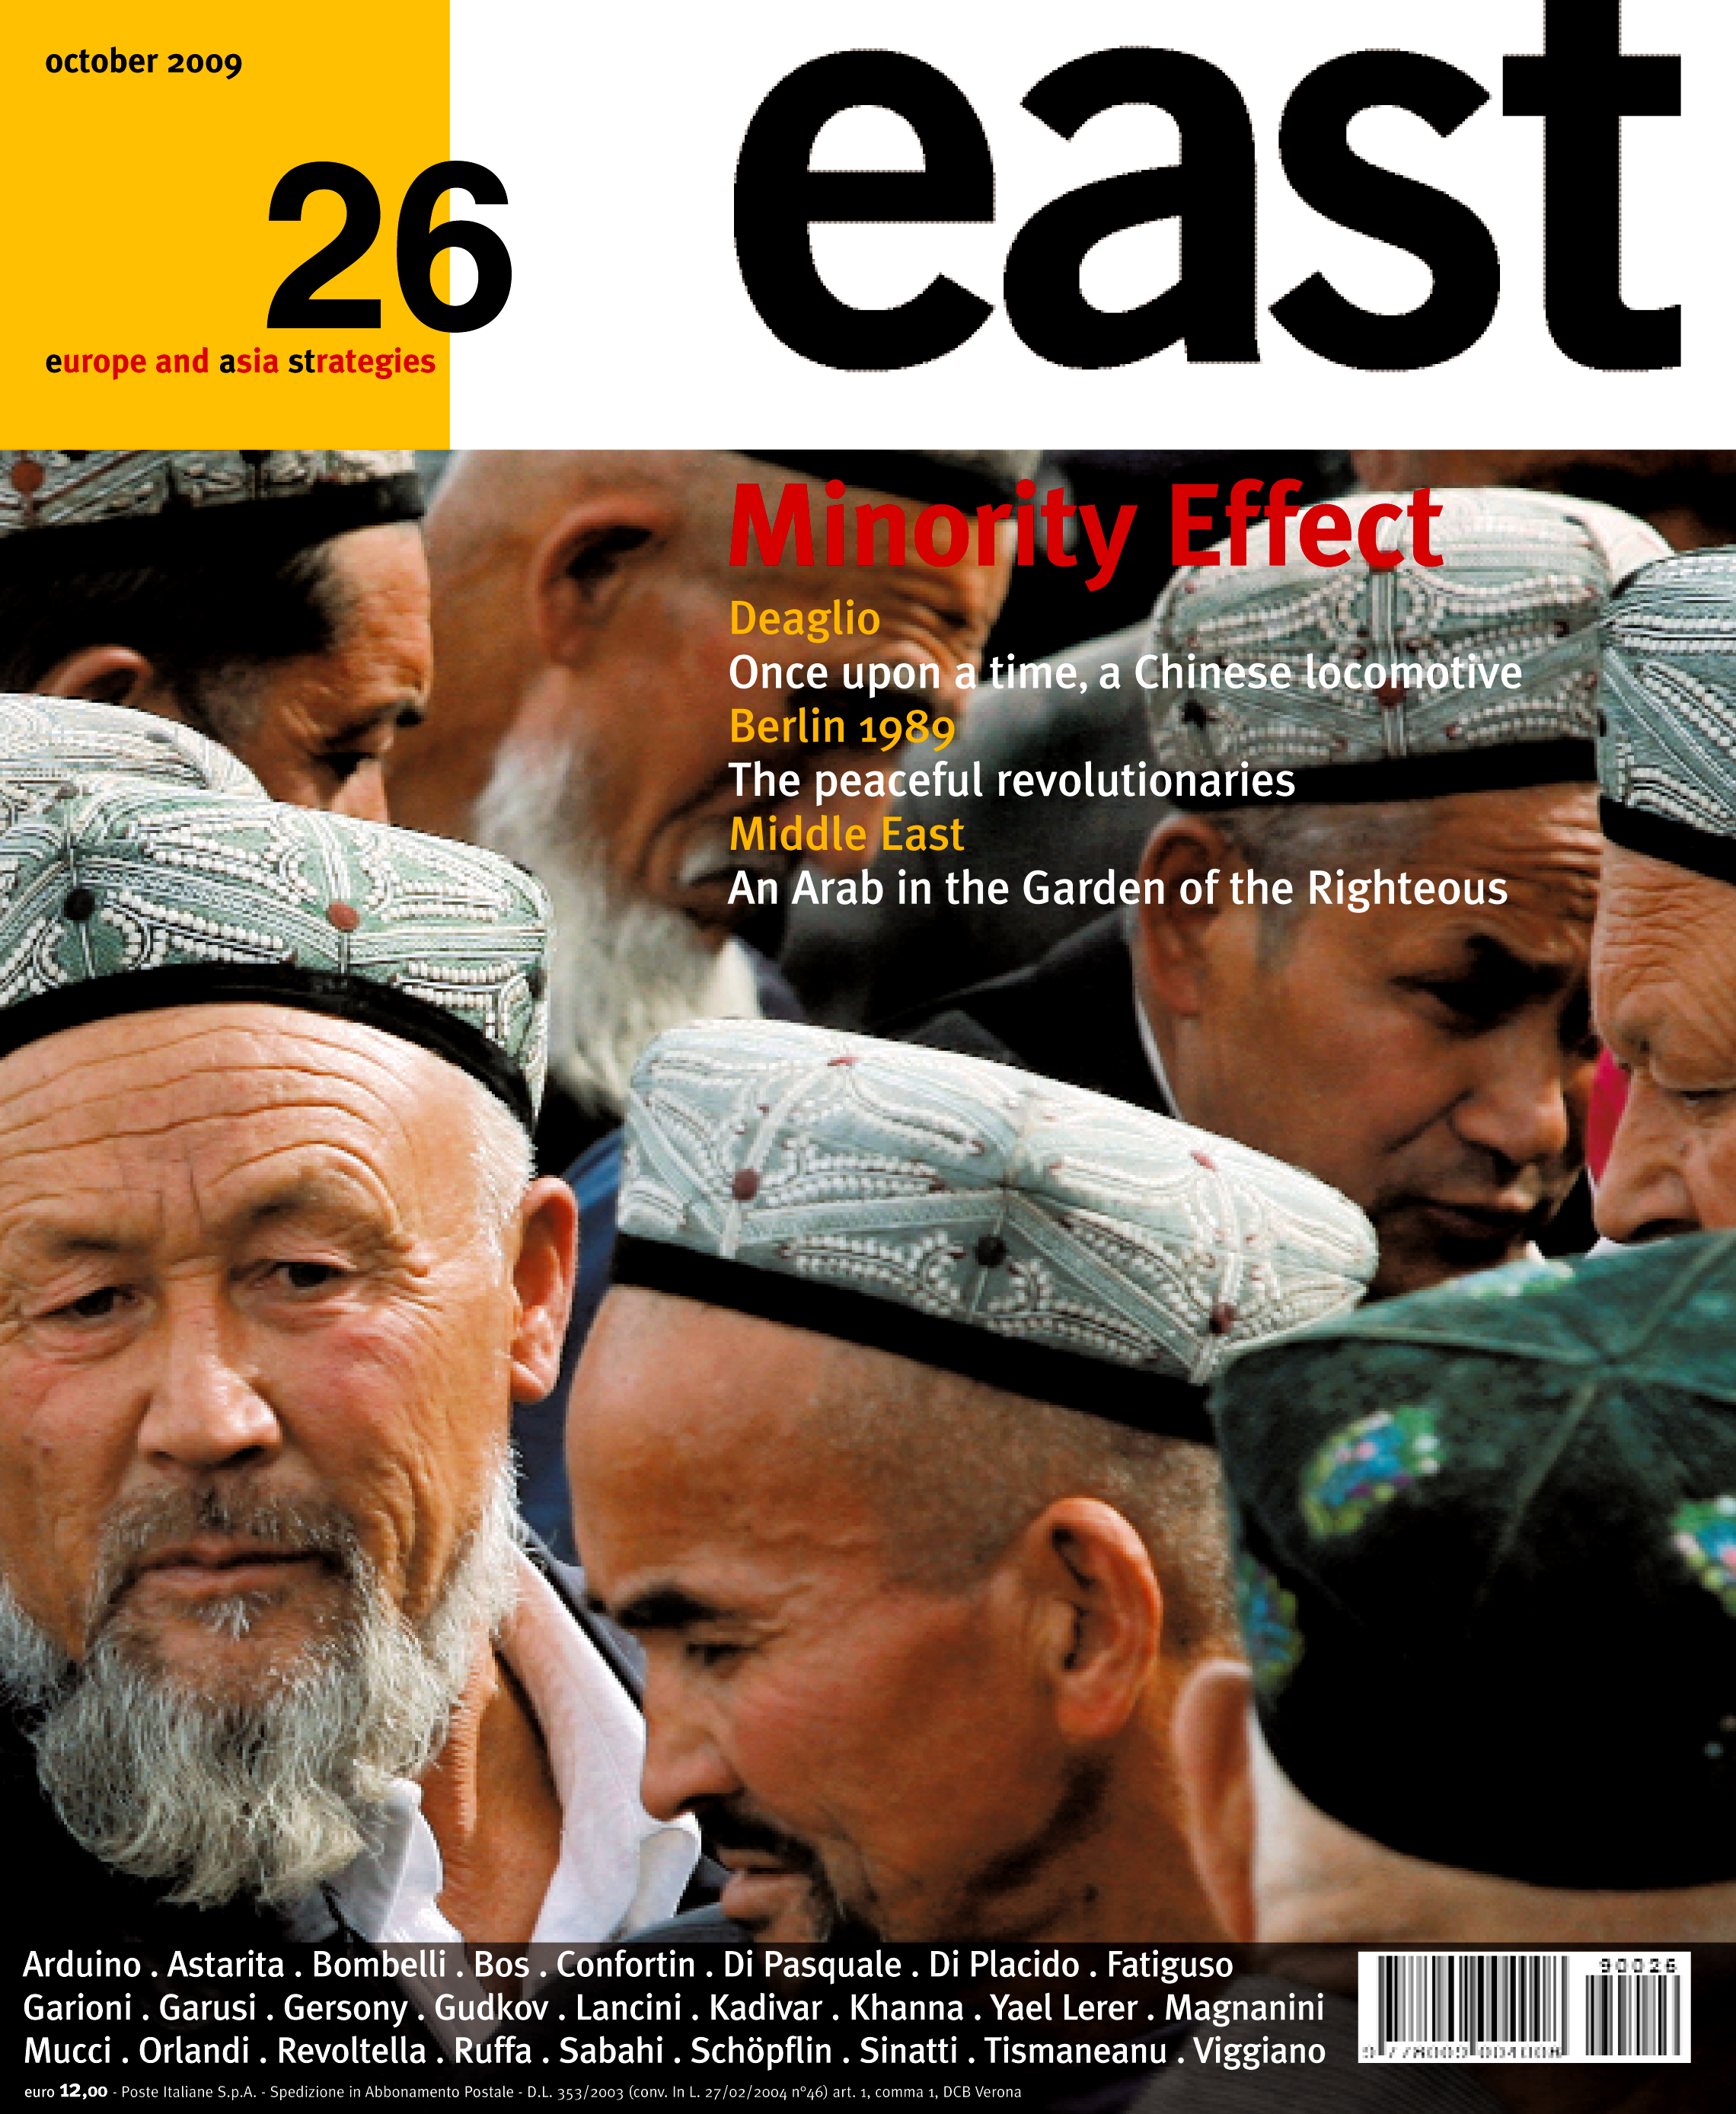 all the issues of eastwest and east eastonline